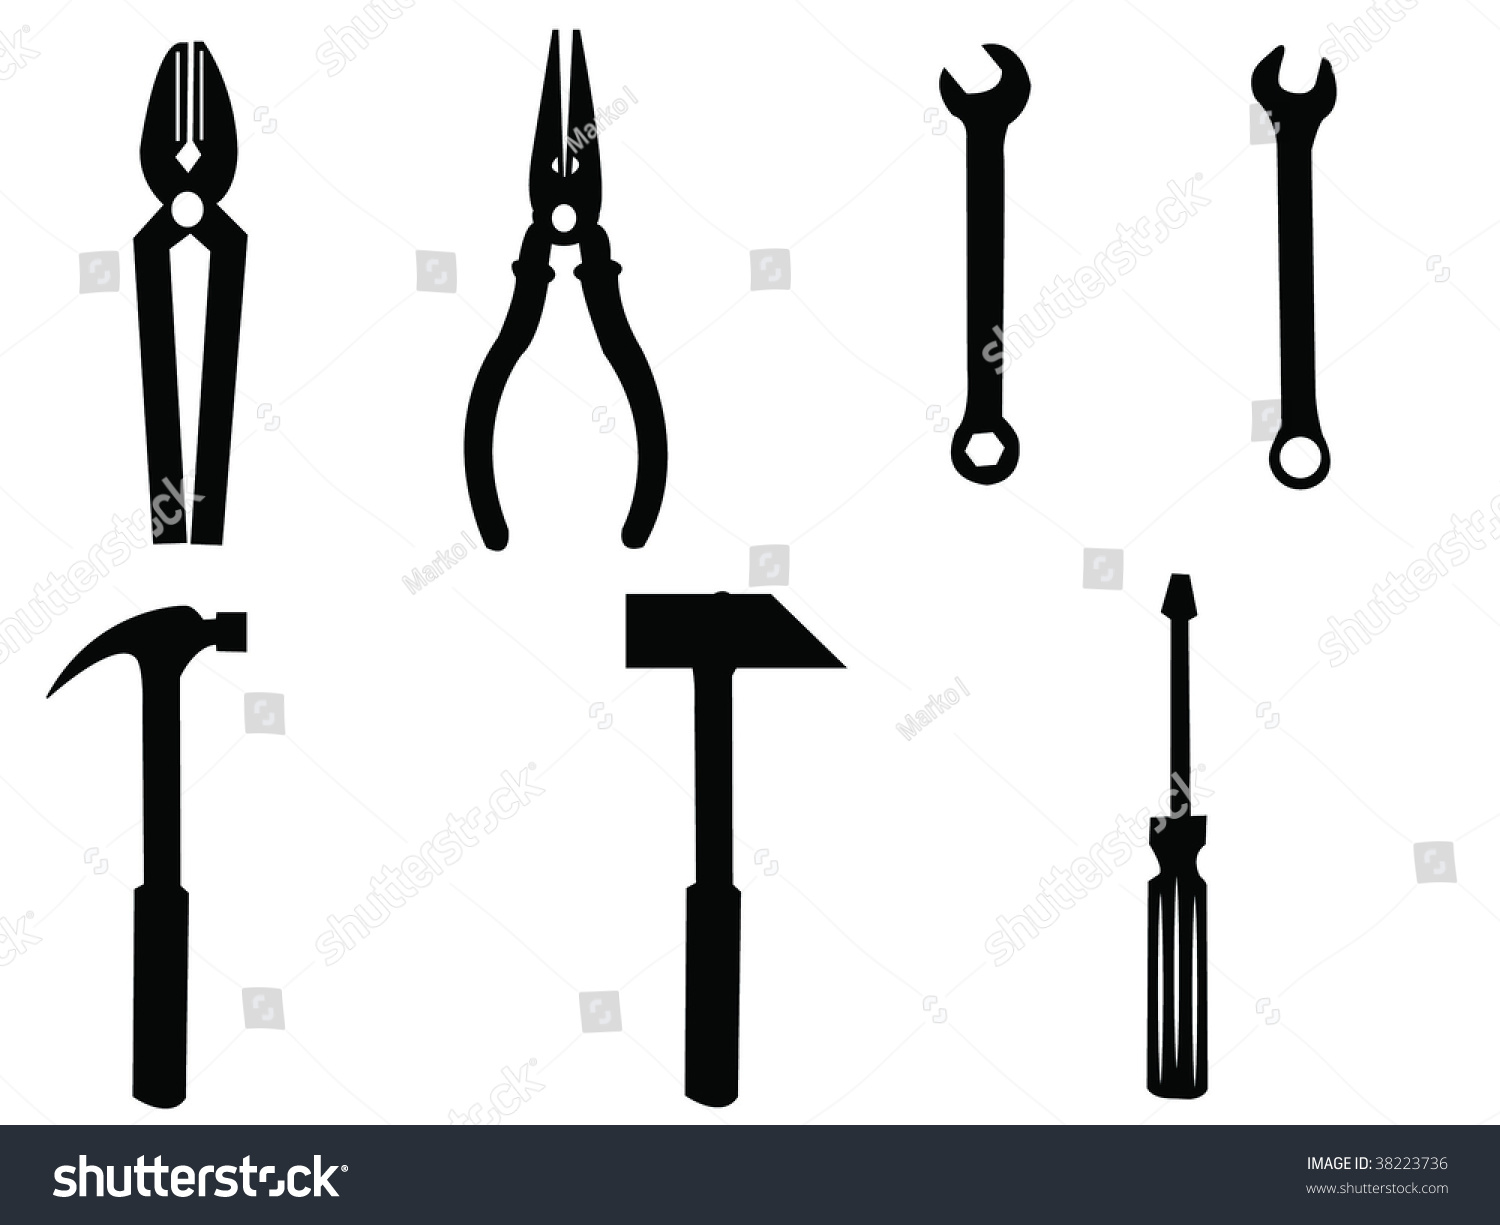 Fixing Tools Vector Silhouettes - 38223736 : Shutterstock